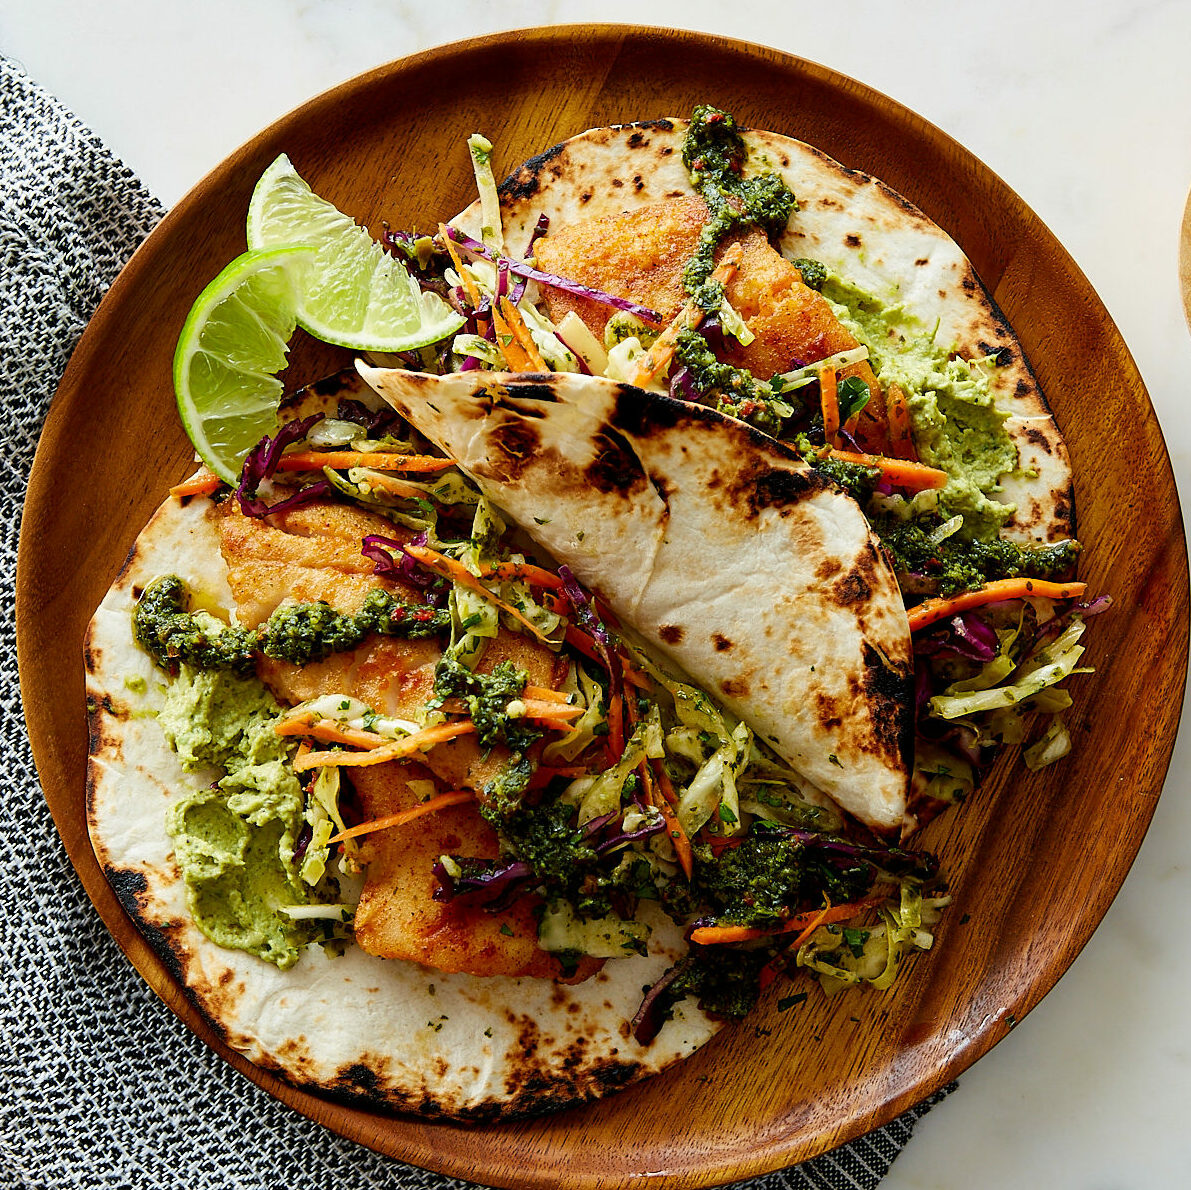 Chimichurri Fish Tacos with Shredded Cabbage